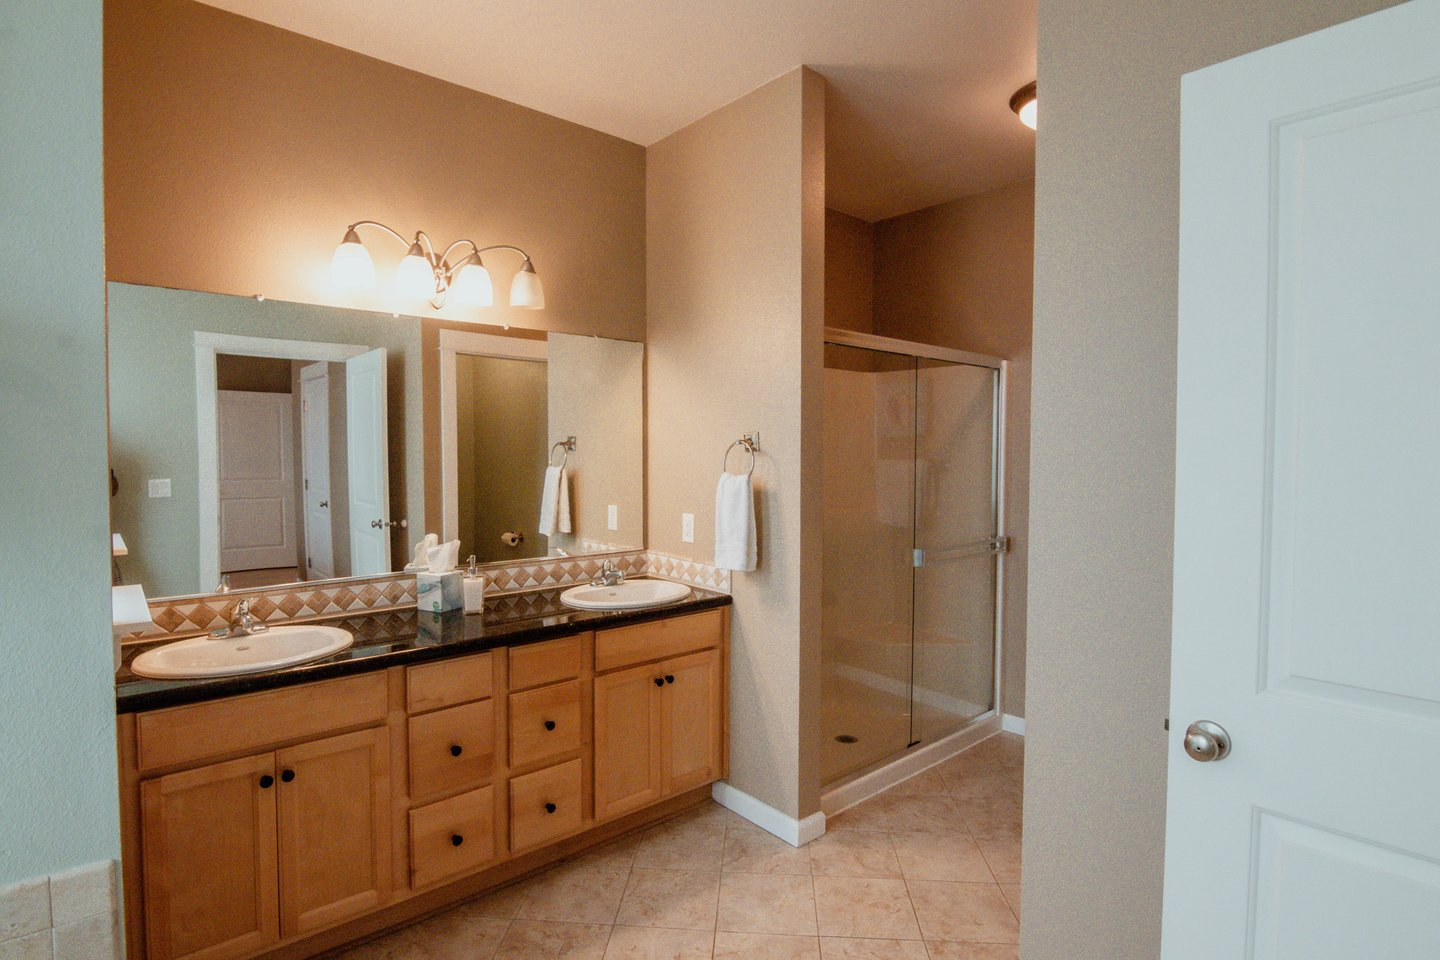 The double vanity and walk in shower is very spacious.